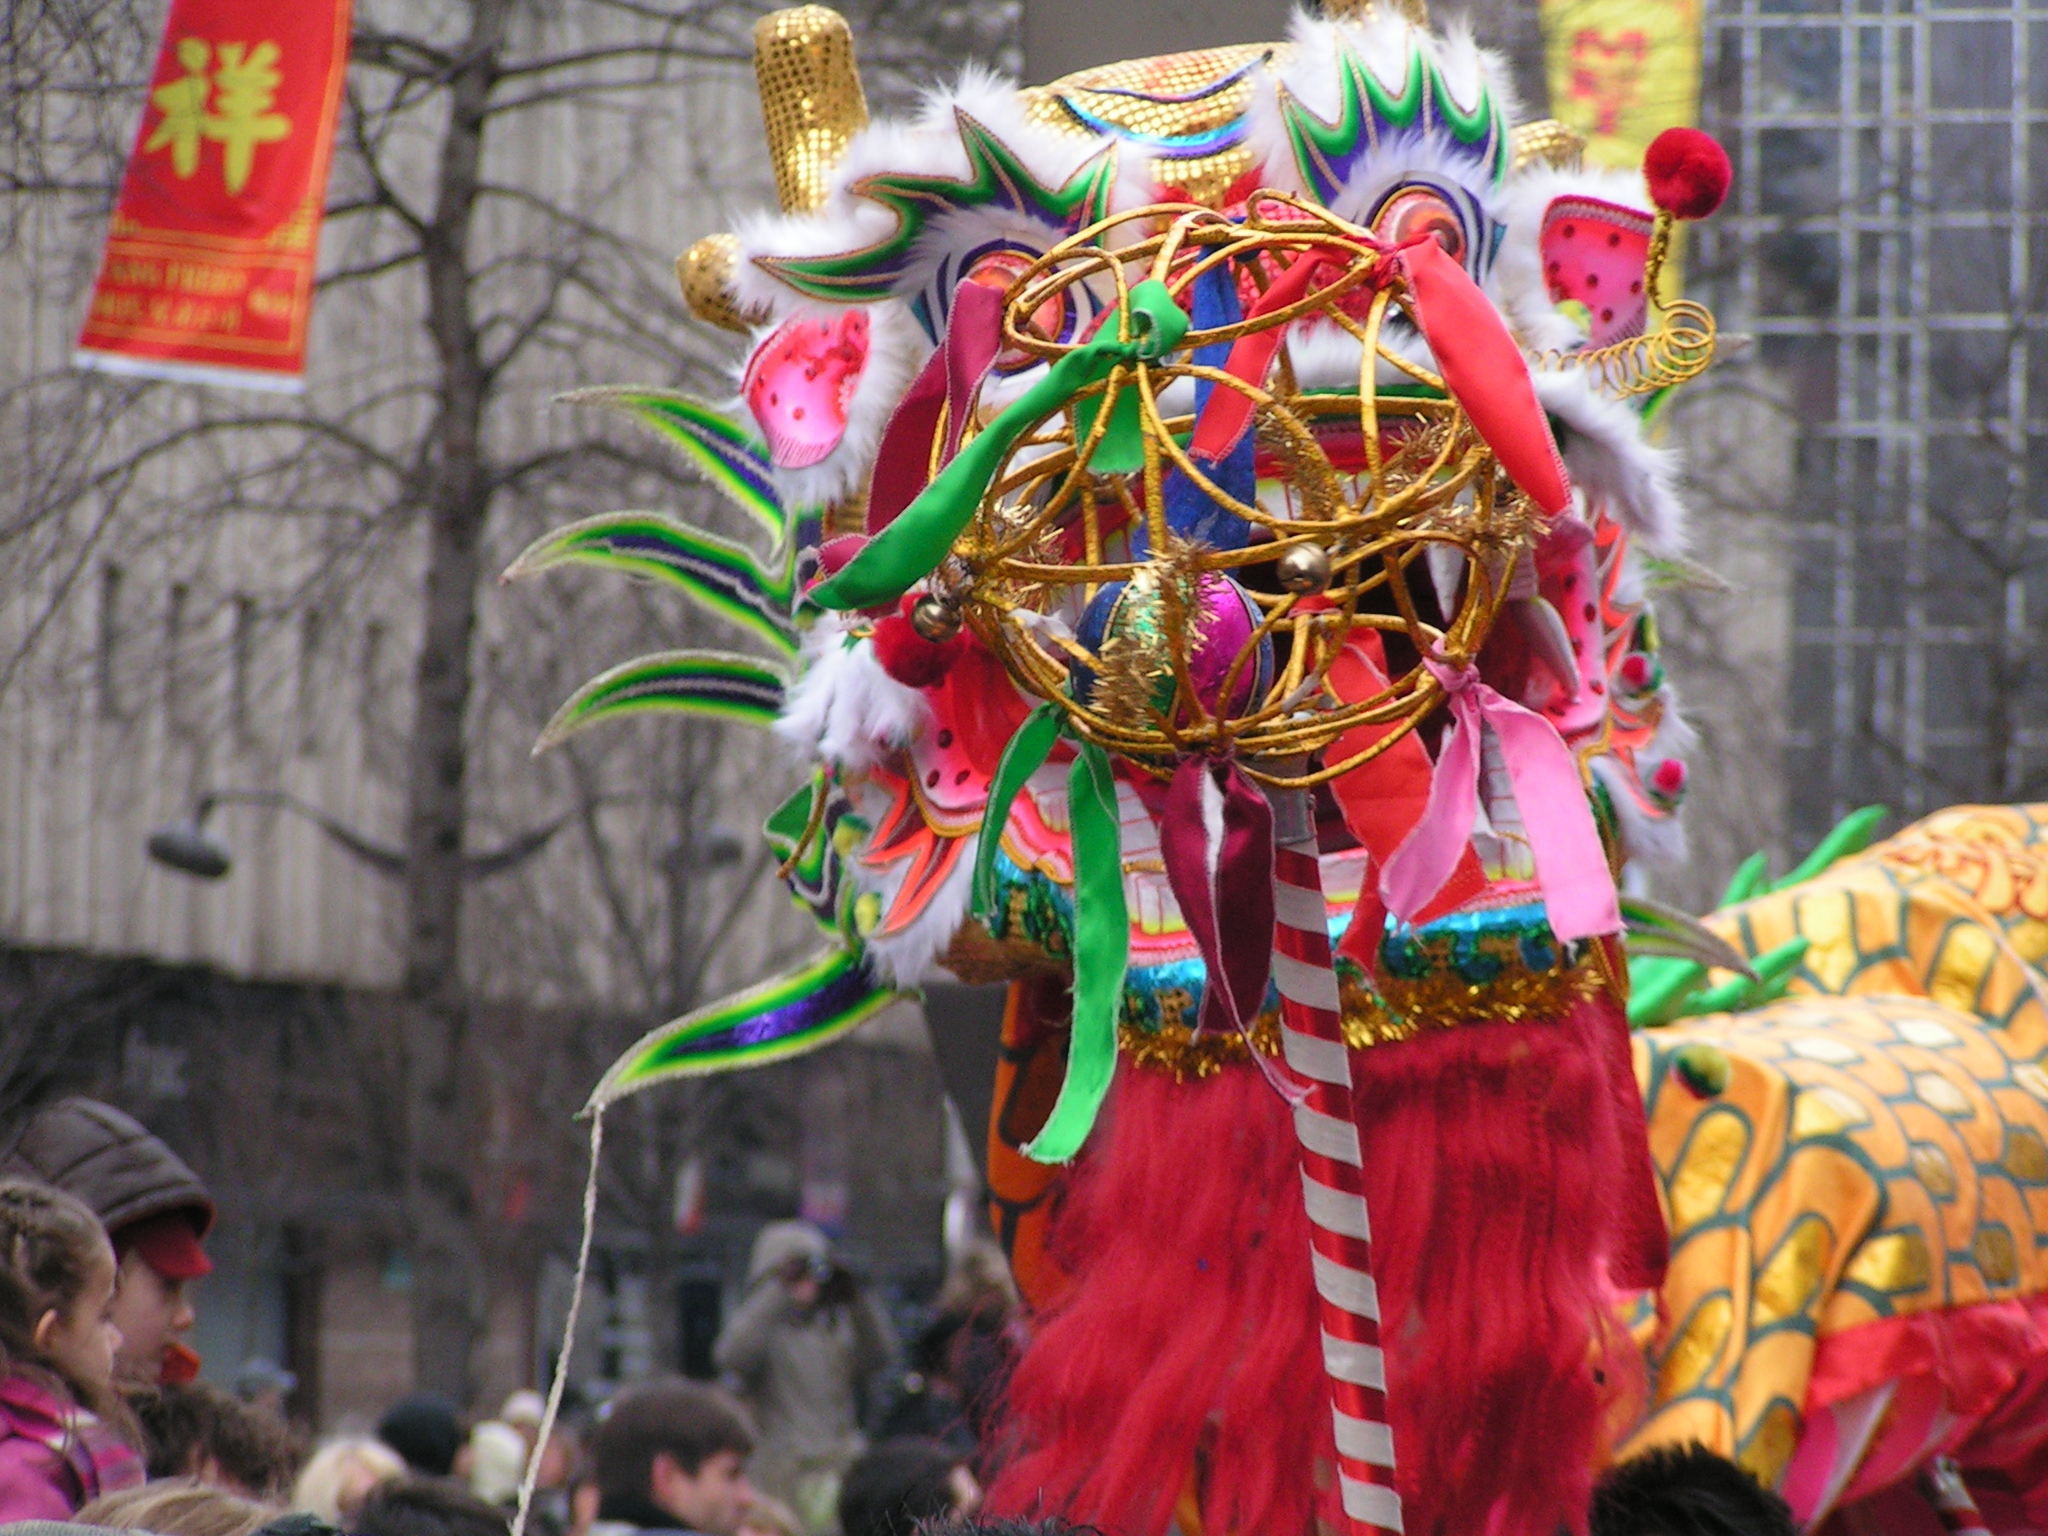 [2009-01-31] Nouvel an chinois, Paris XIII